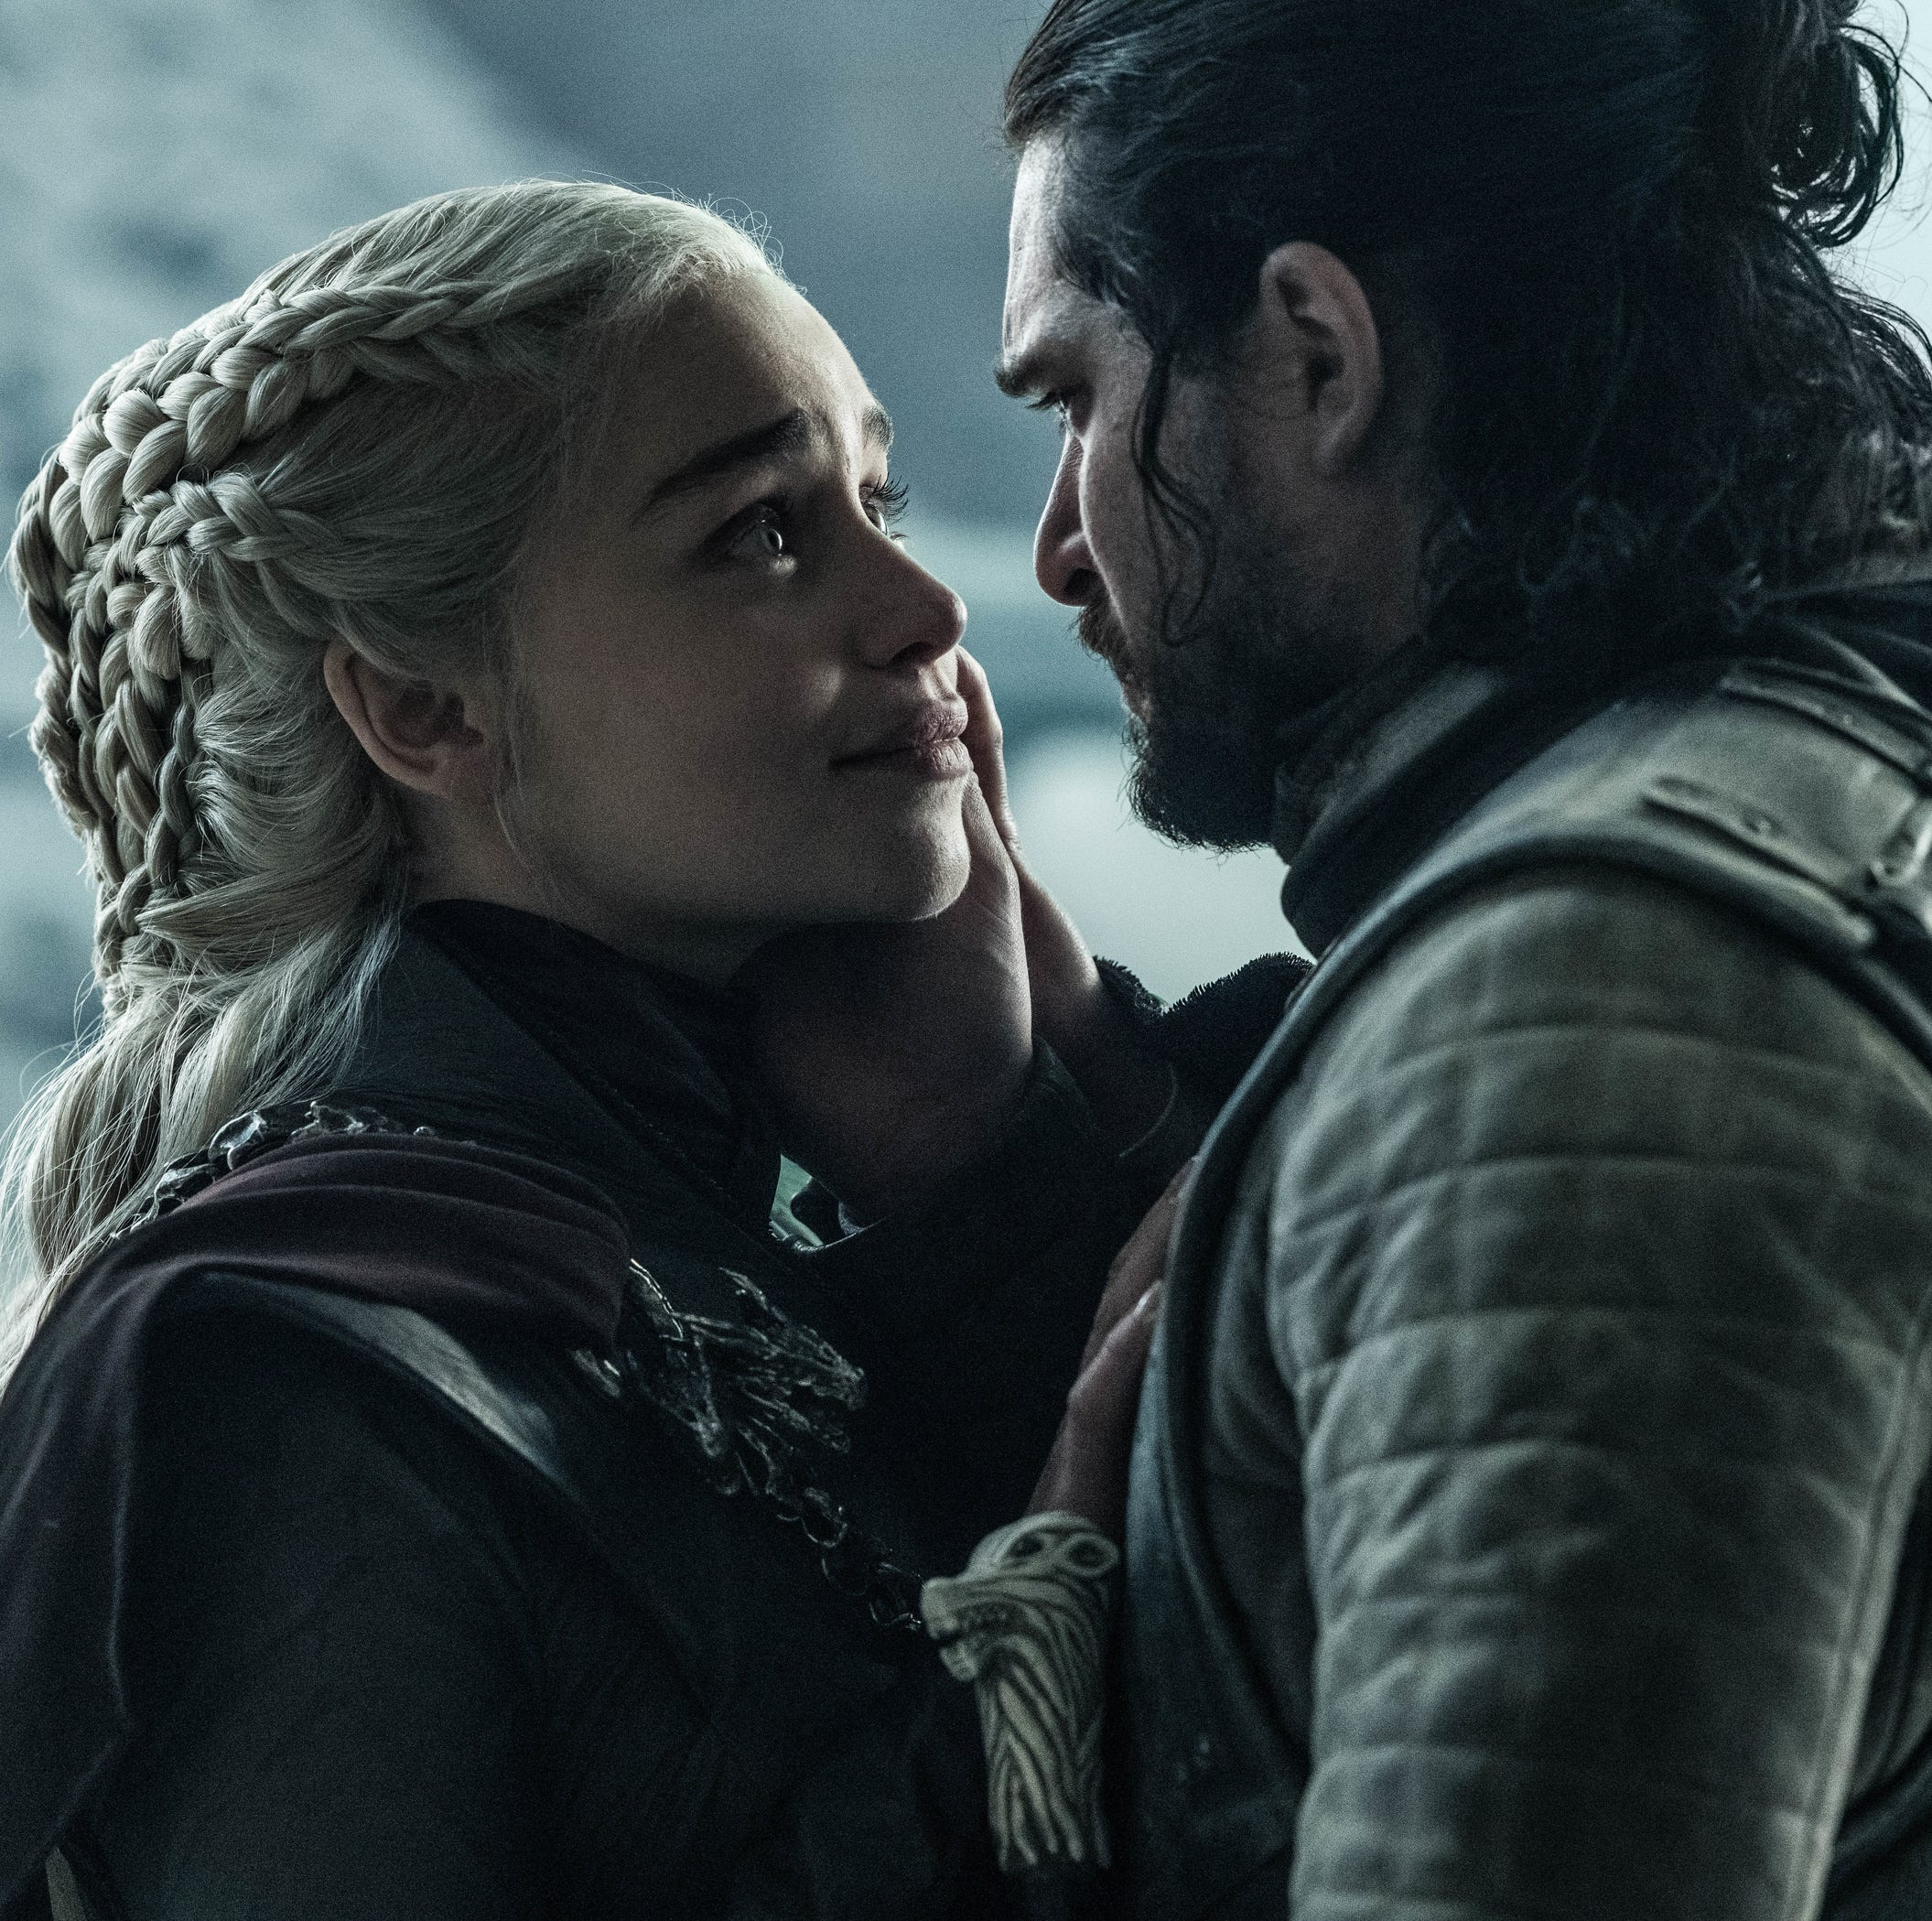 'Game of Thrones' finale: Iron Throne, Jon Snow, Dany, Arya, Sansa. Here's how it ends